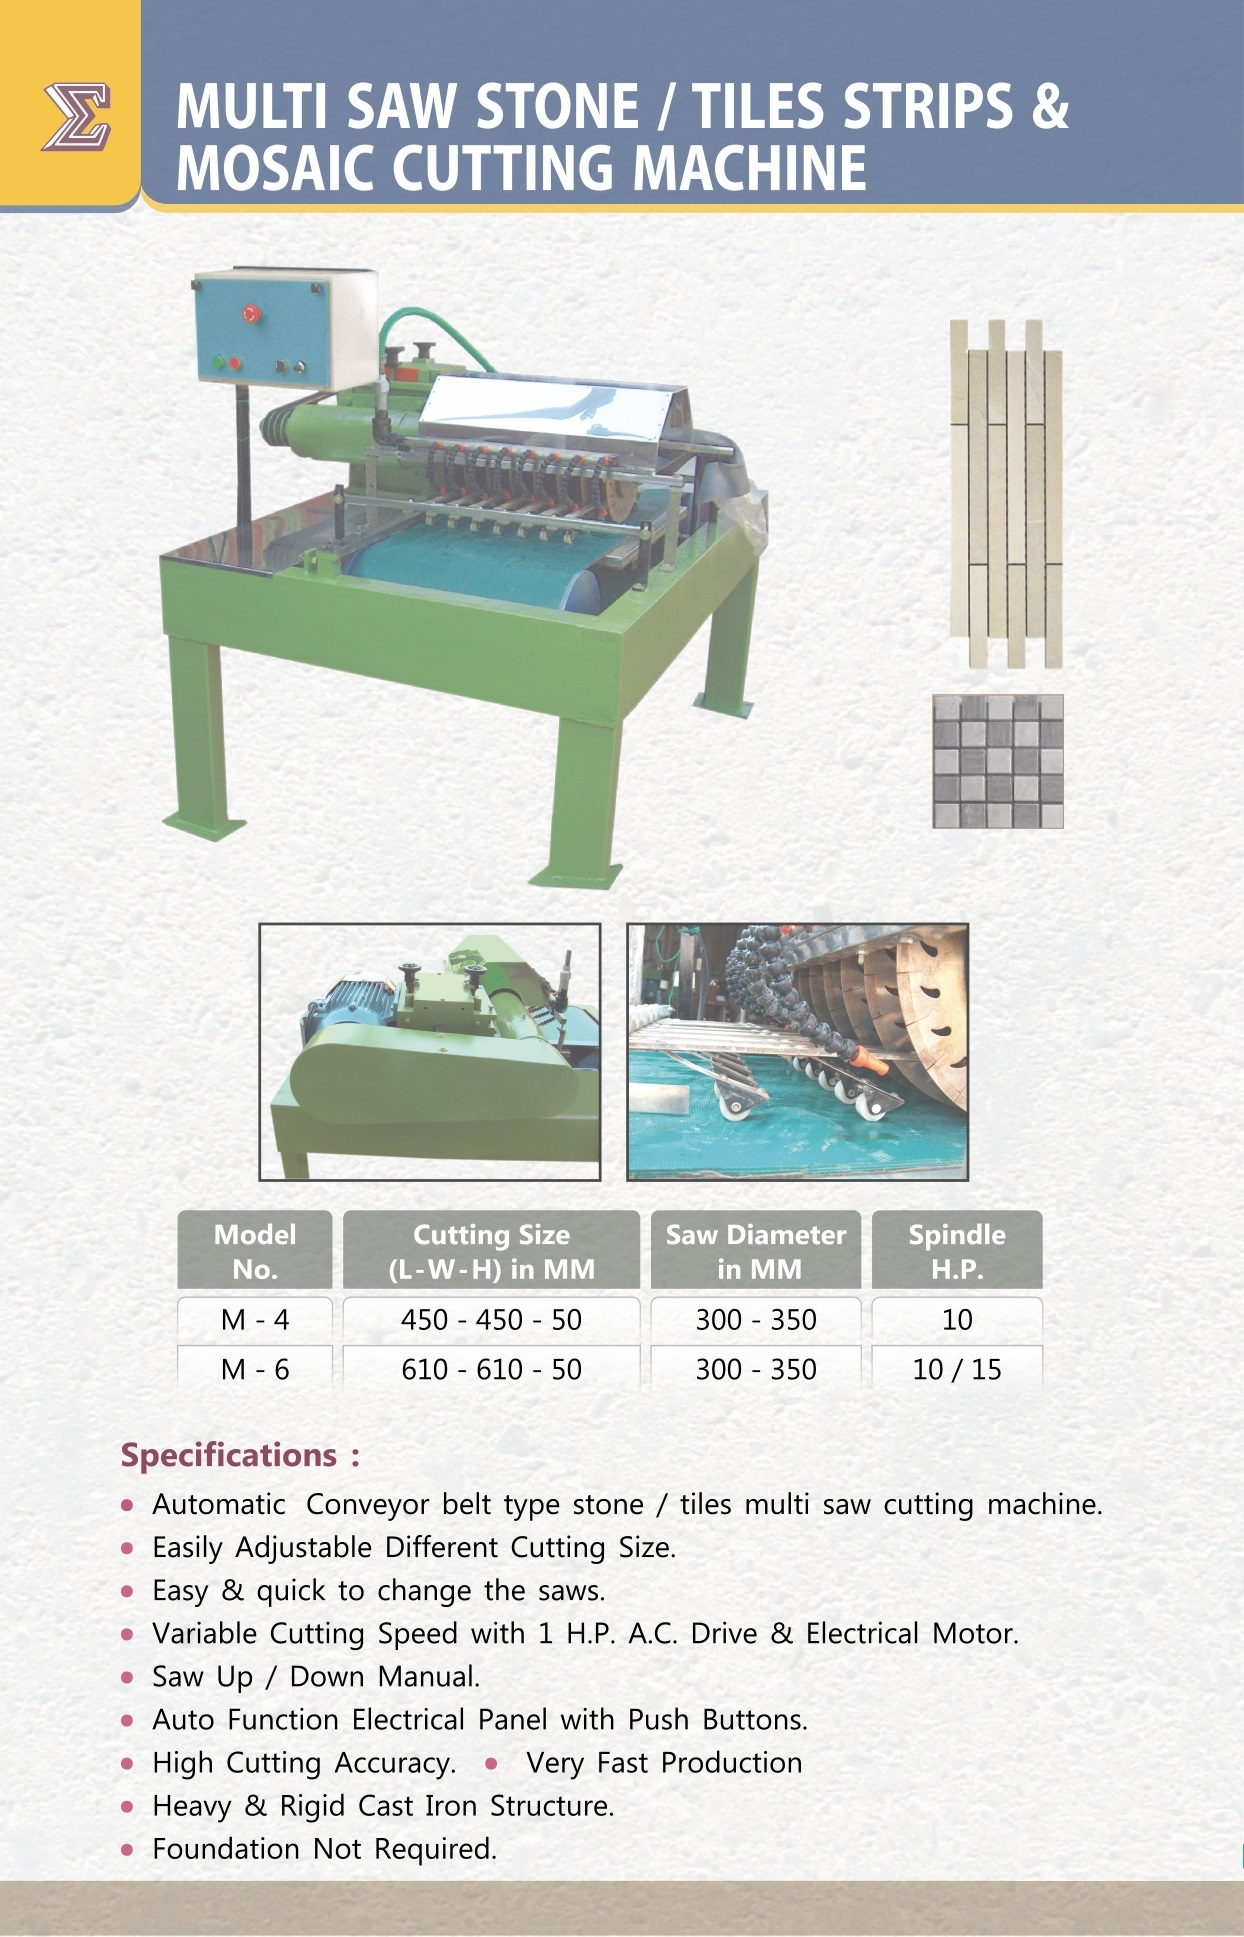 CF SMT Multi Saw Stone/Tiles Strips & Mosaic Cutting Machine M-4